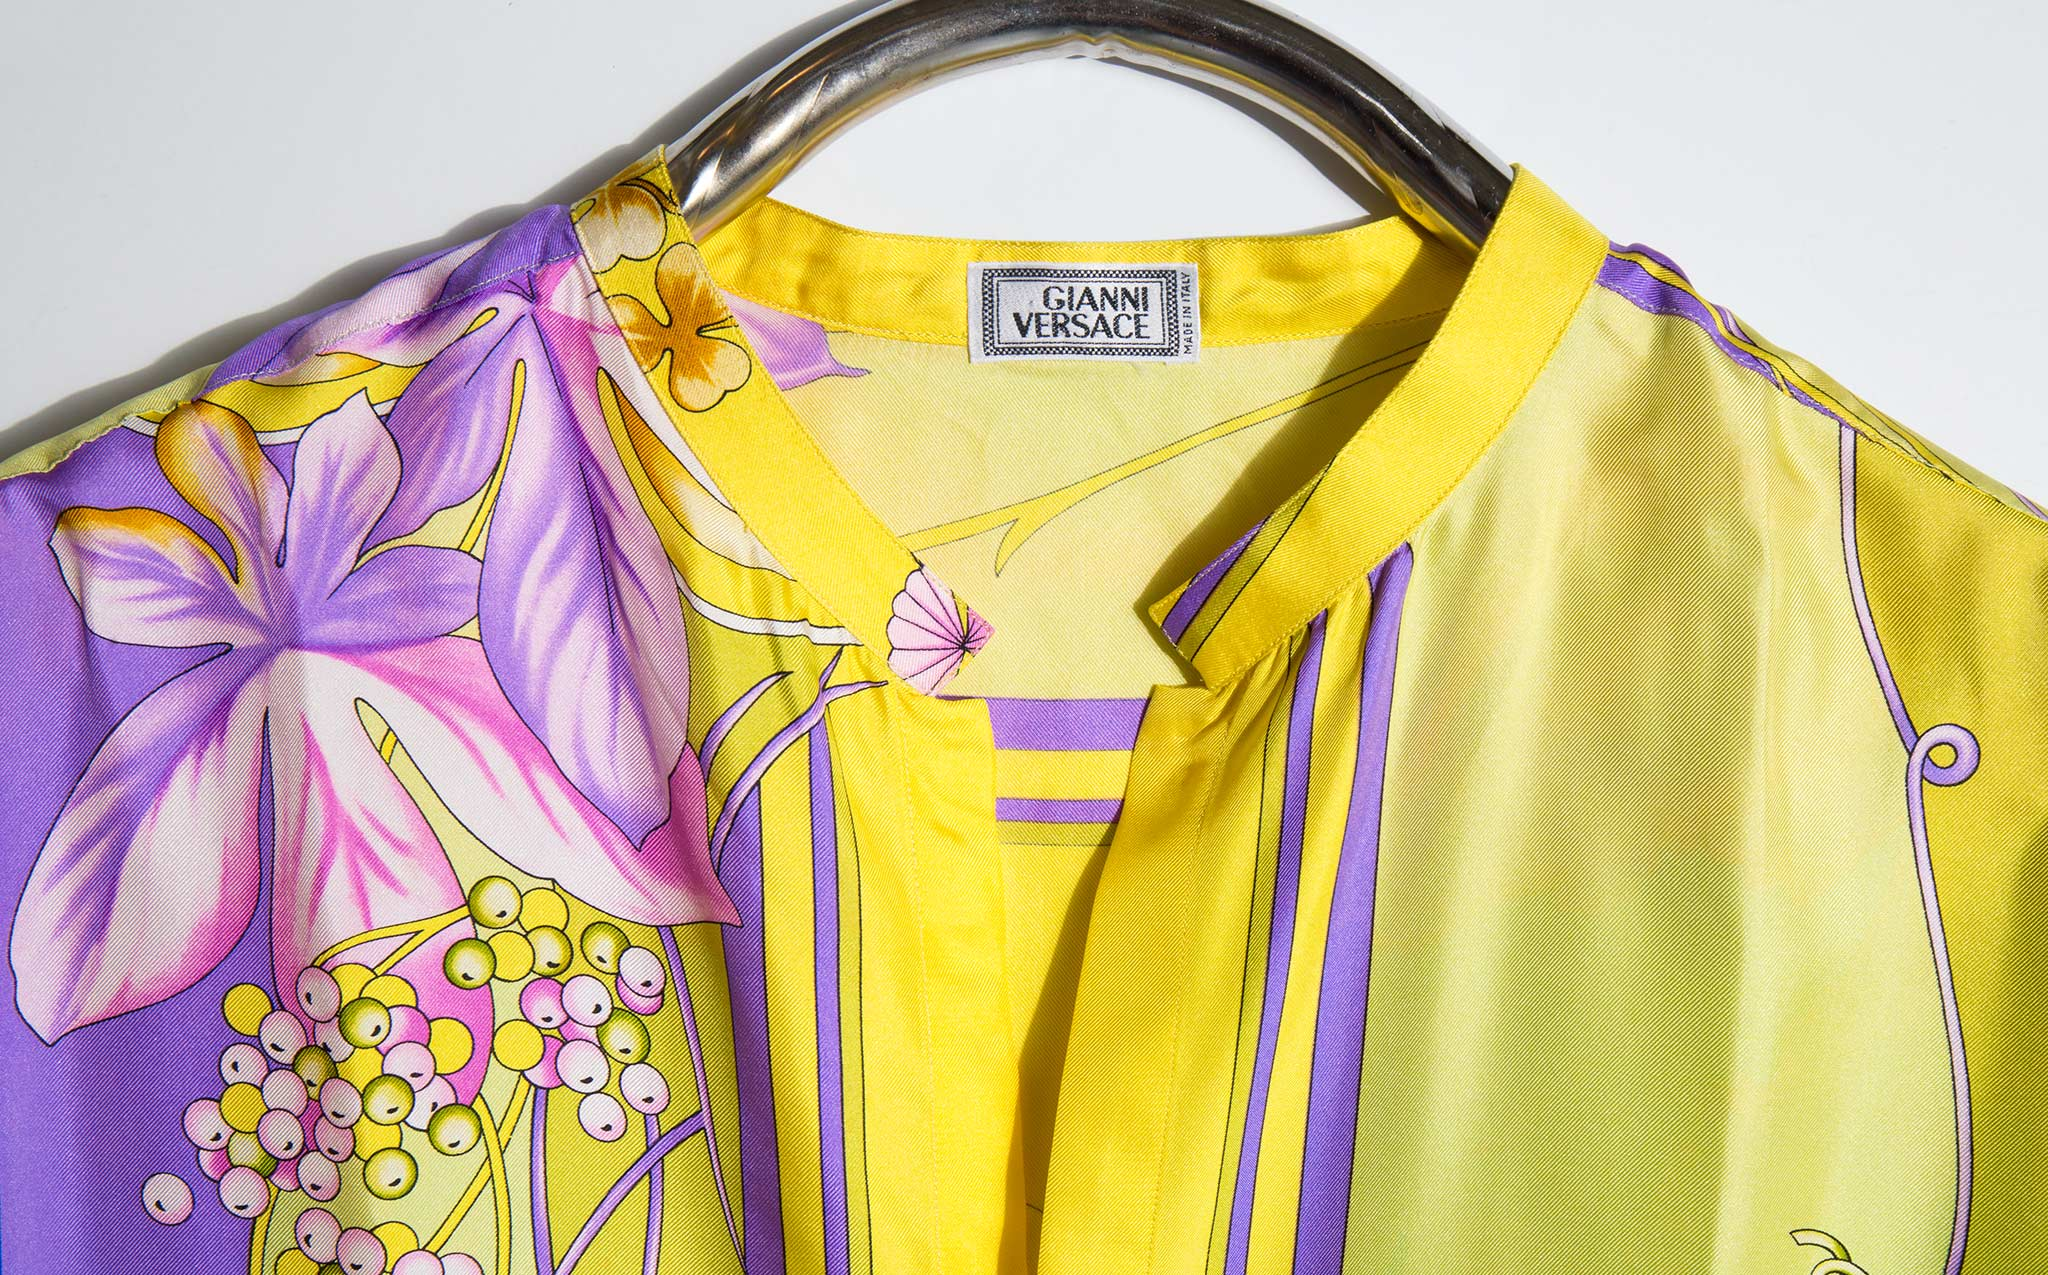 Gianni Versace Iconic 1990's Silk Floral Print Shirt